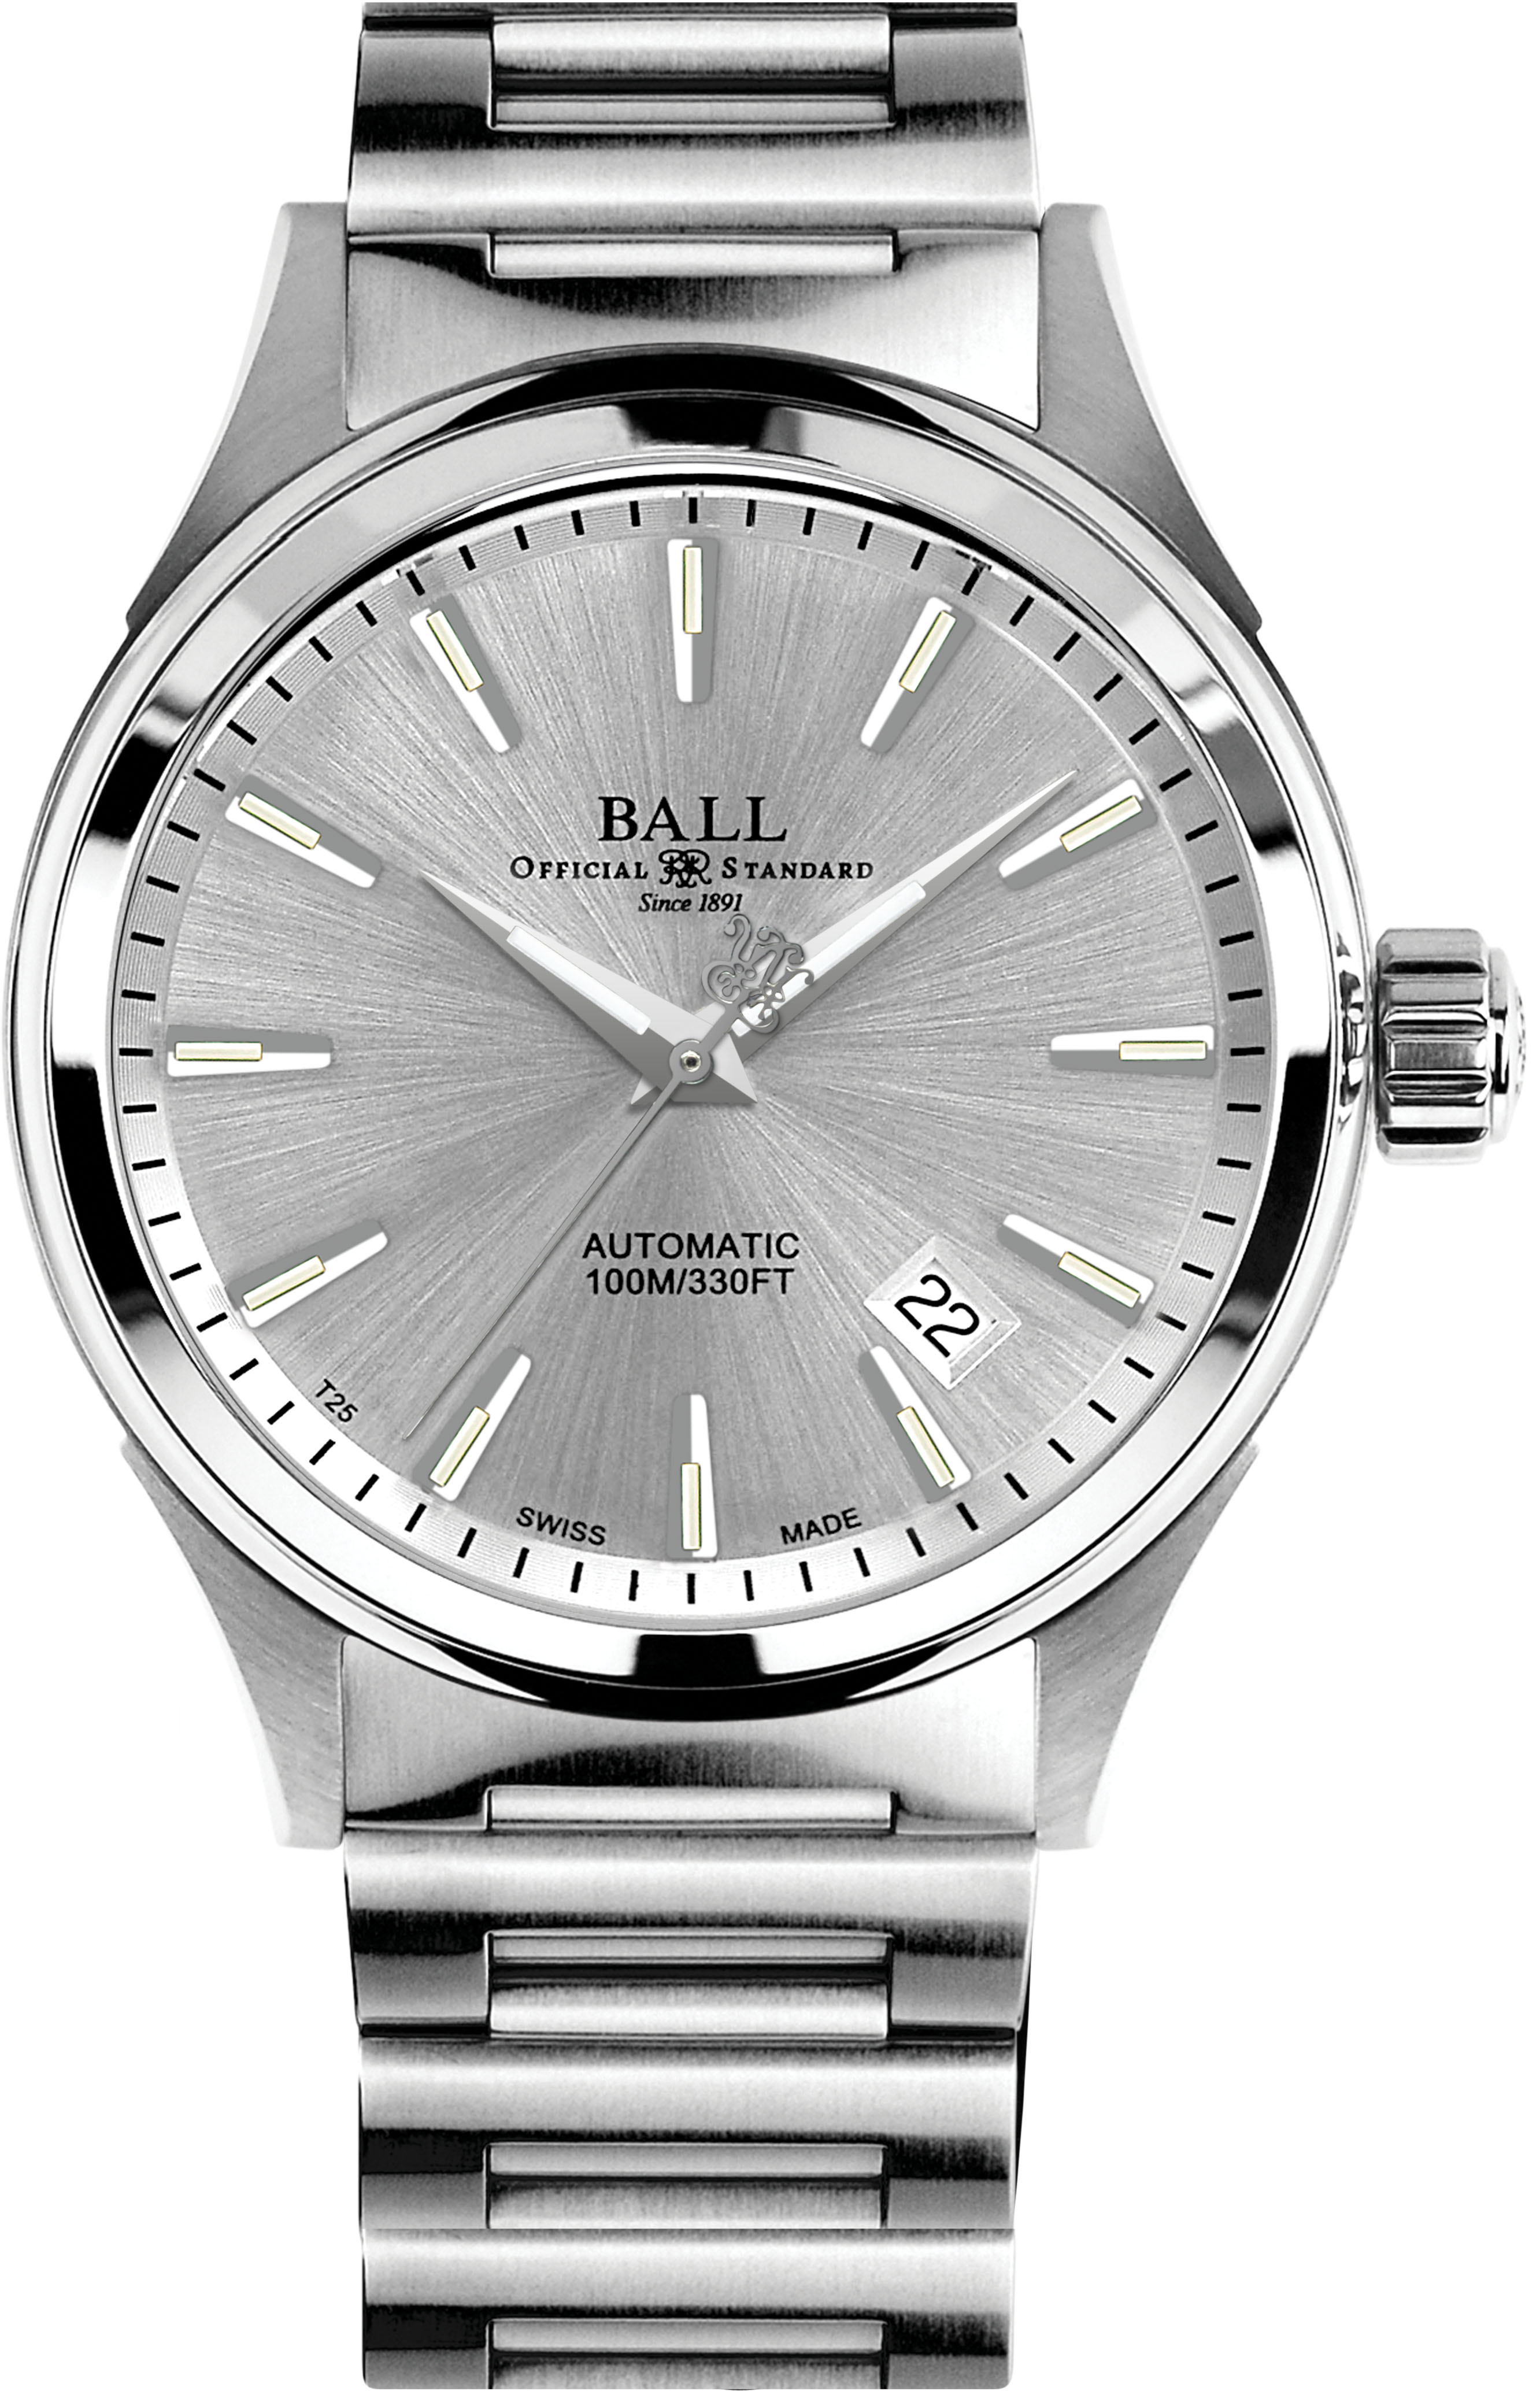 BALL VICTORY NM2098C-S3J-SL